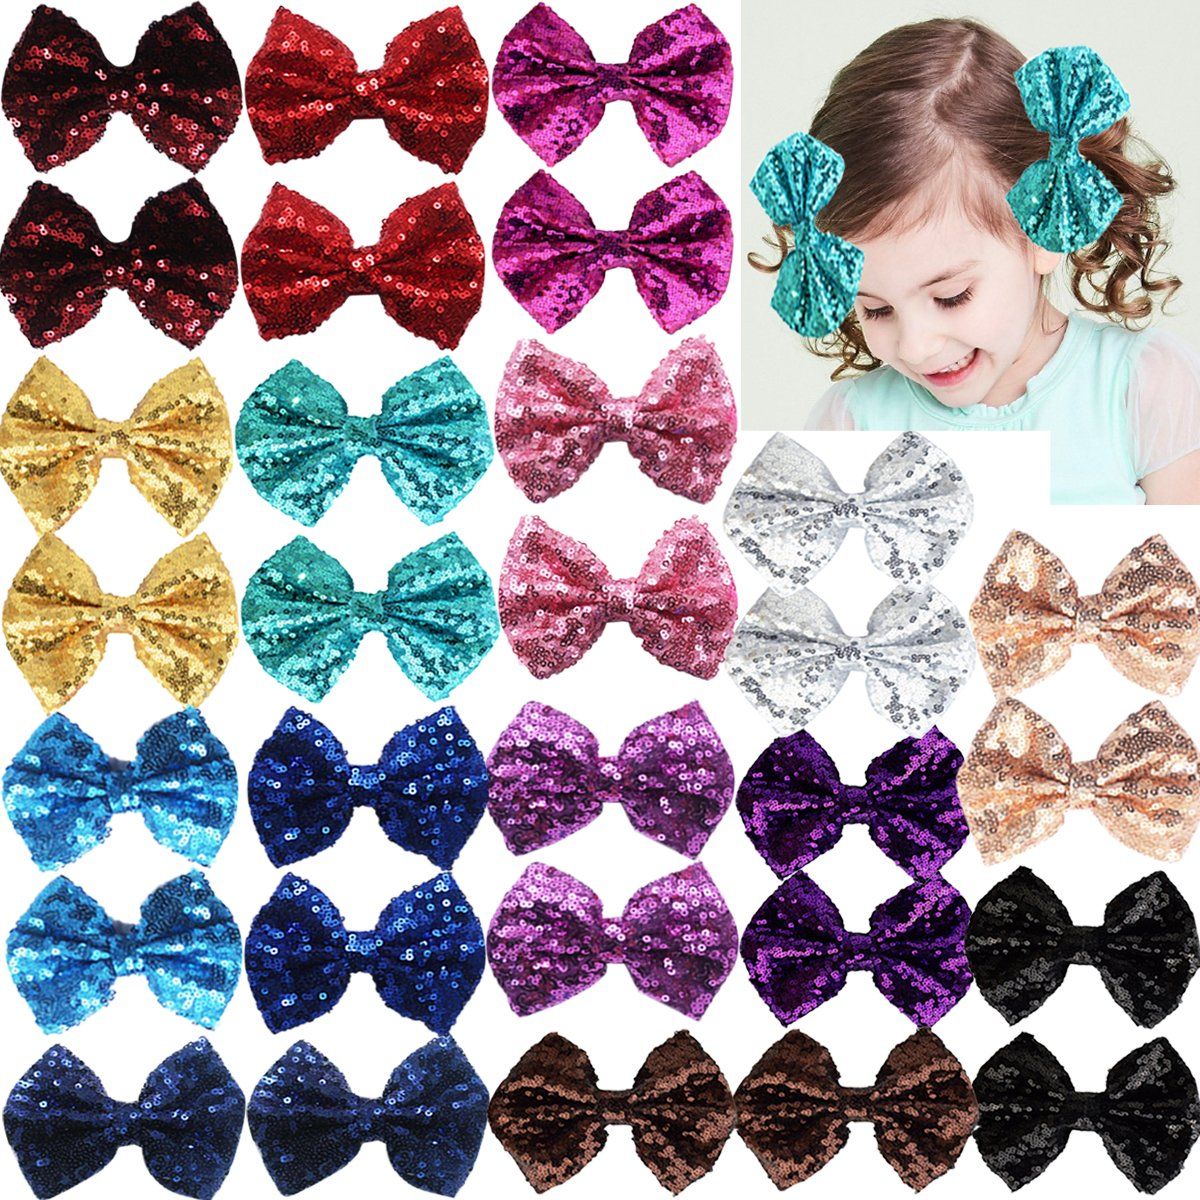 Party Hair Bows Clips for Girls-15pcs Bling Sparkly Glitter Sequins Big 4 Hair Bows Alligator Hair Clips-Nylon Mesh Ribbon Bowknot Hairpins for Baby Girls Kids Children CELLOT